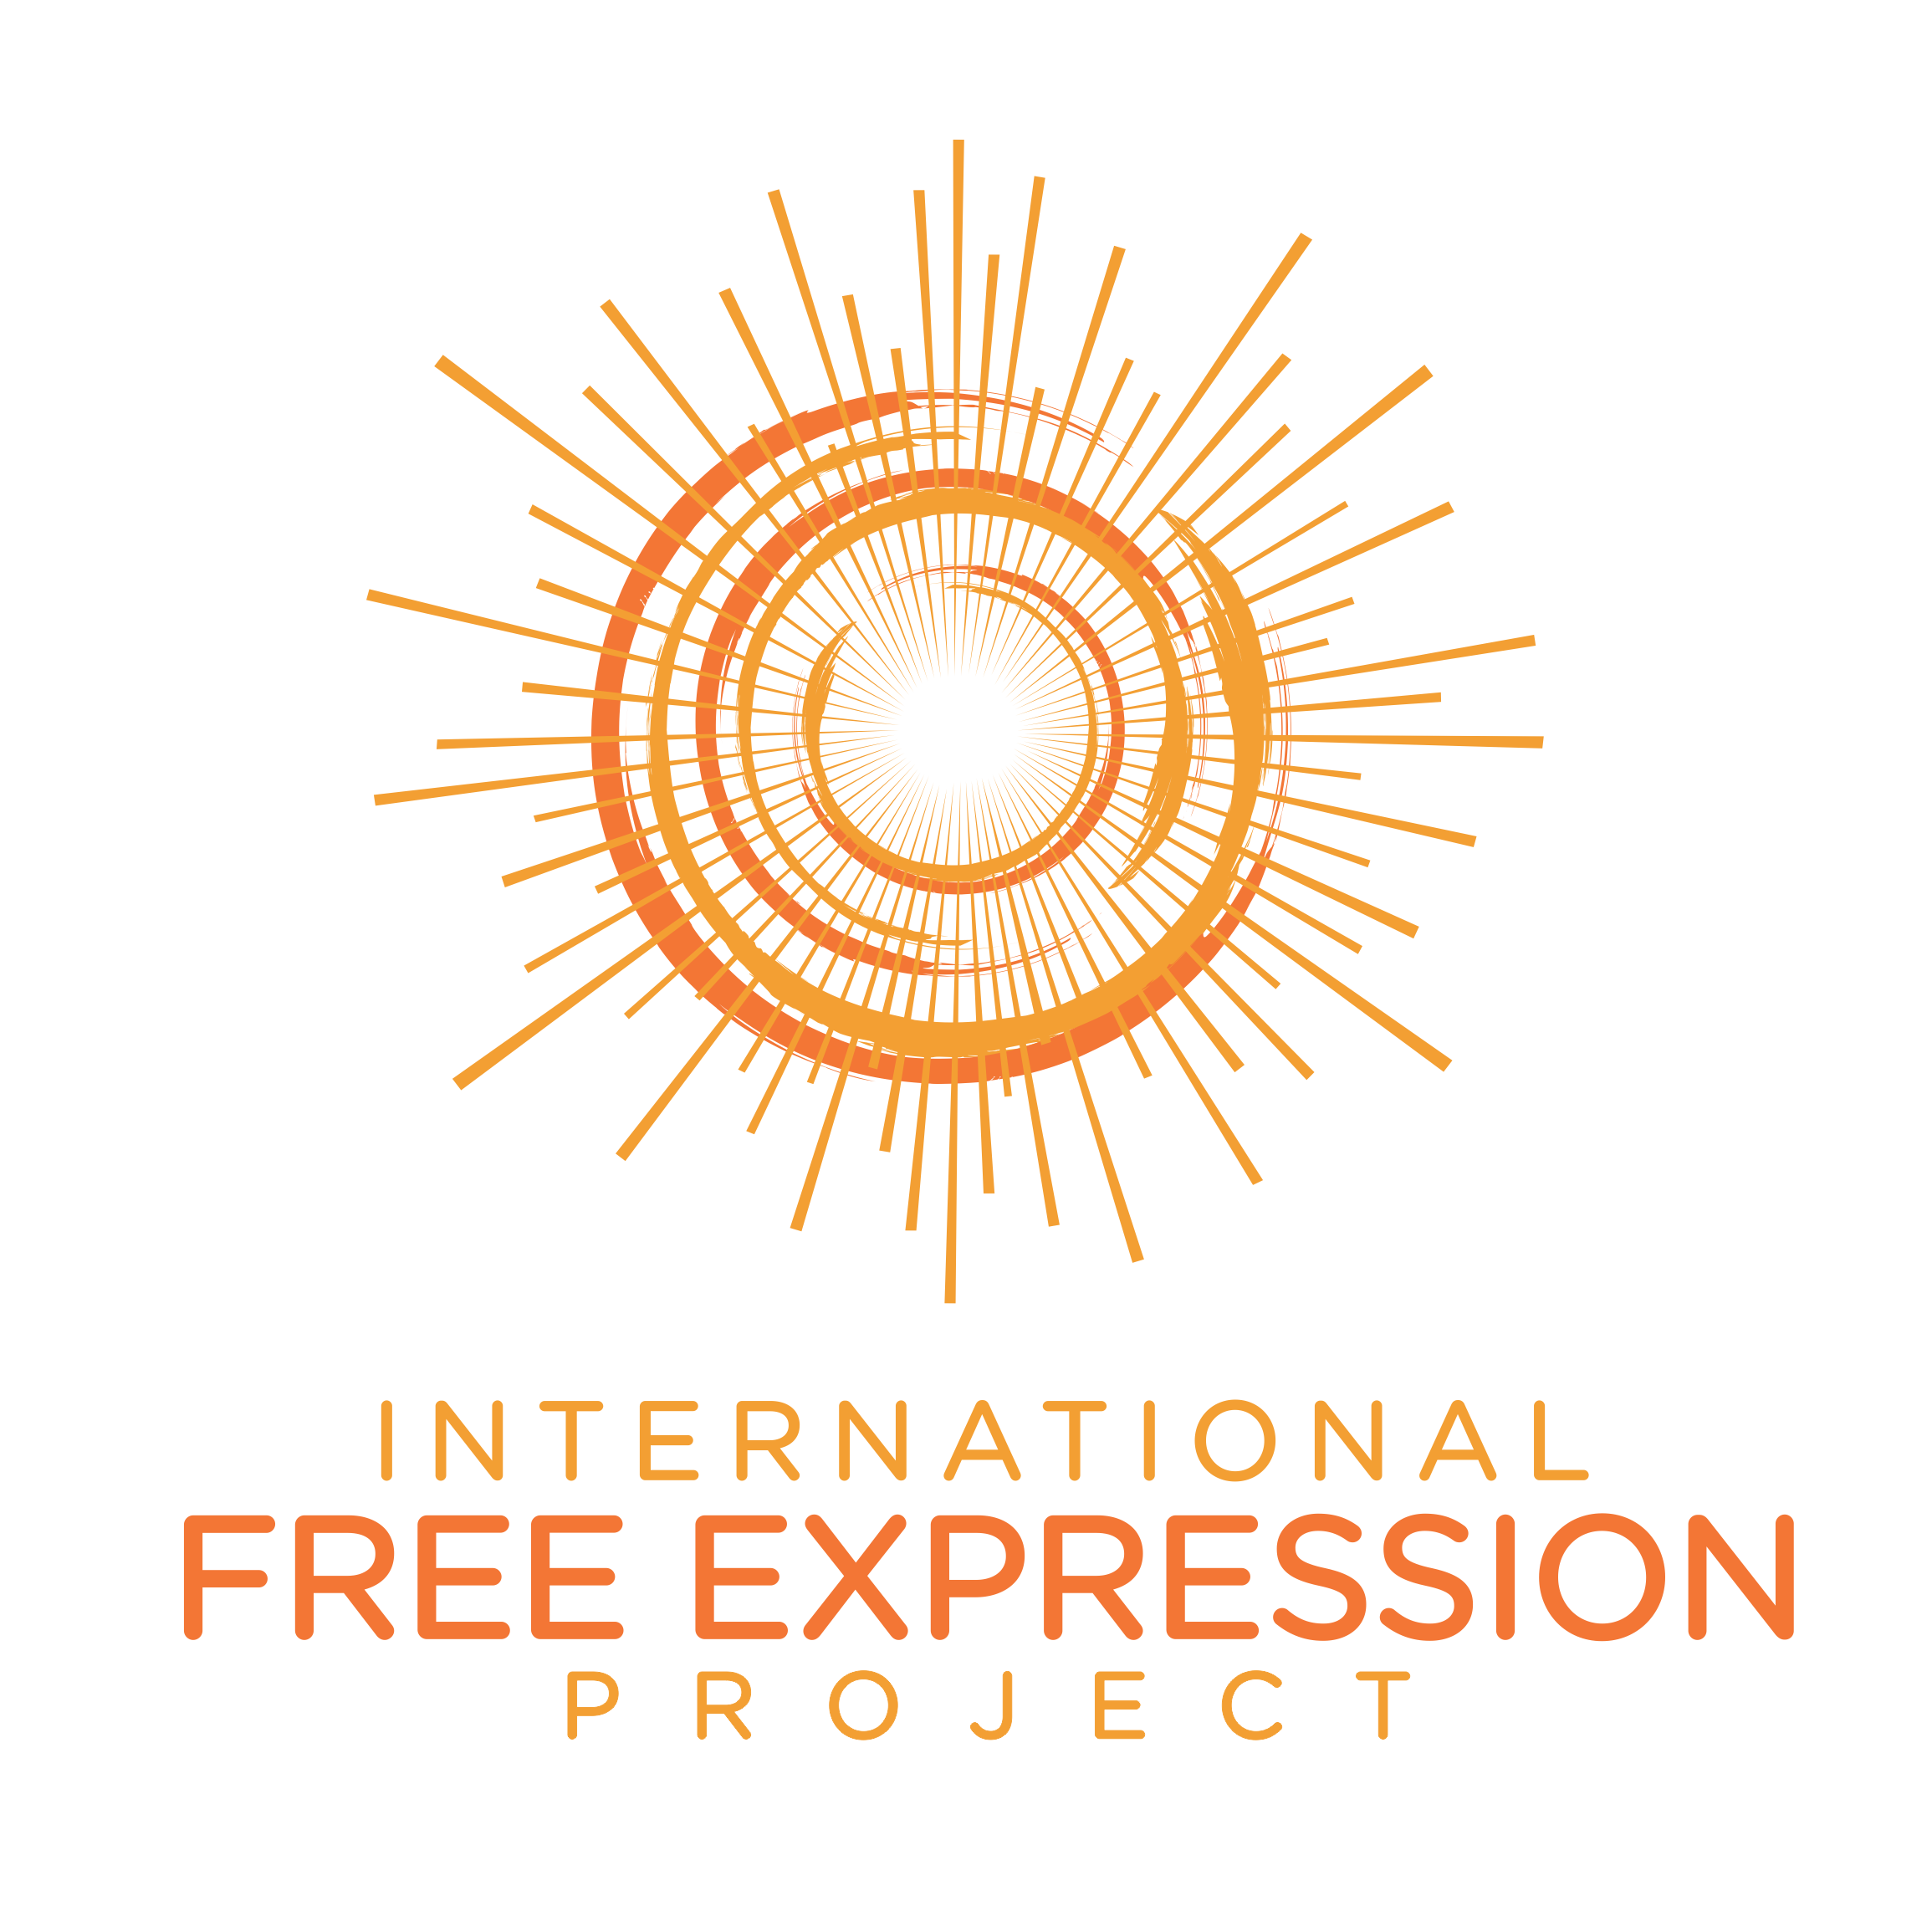 Create an identity for the International Free Expression Project; your work will be seen globally.